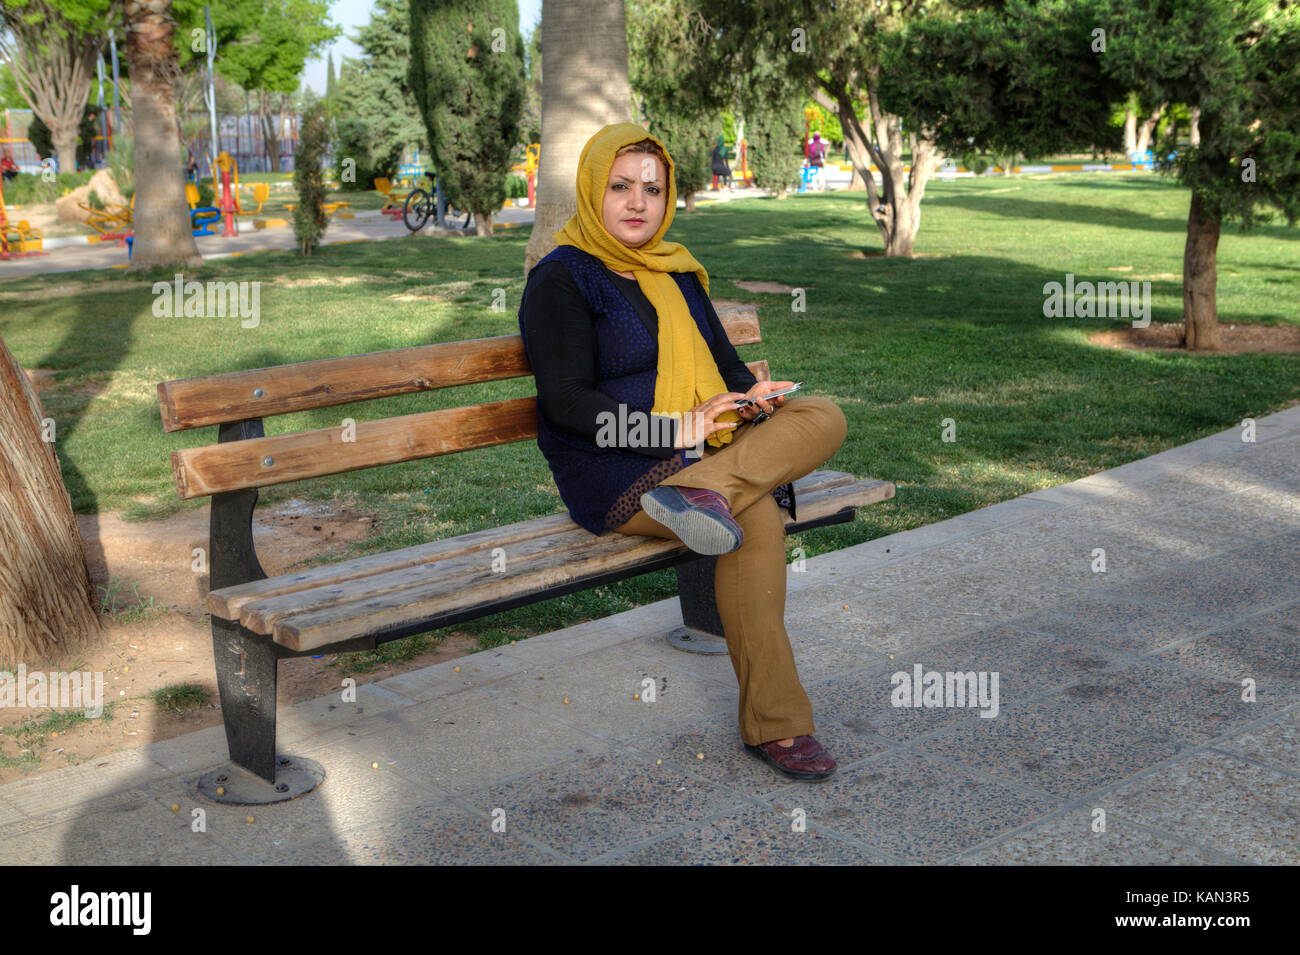 Fars Province, Shiraz, Iran - 19 april, 2017: Young Muslim woman in a yellow headscarf sitting alone on a park bench. - Stock Image